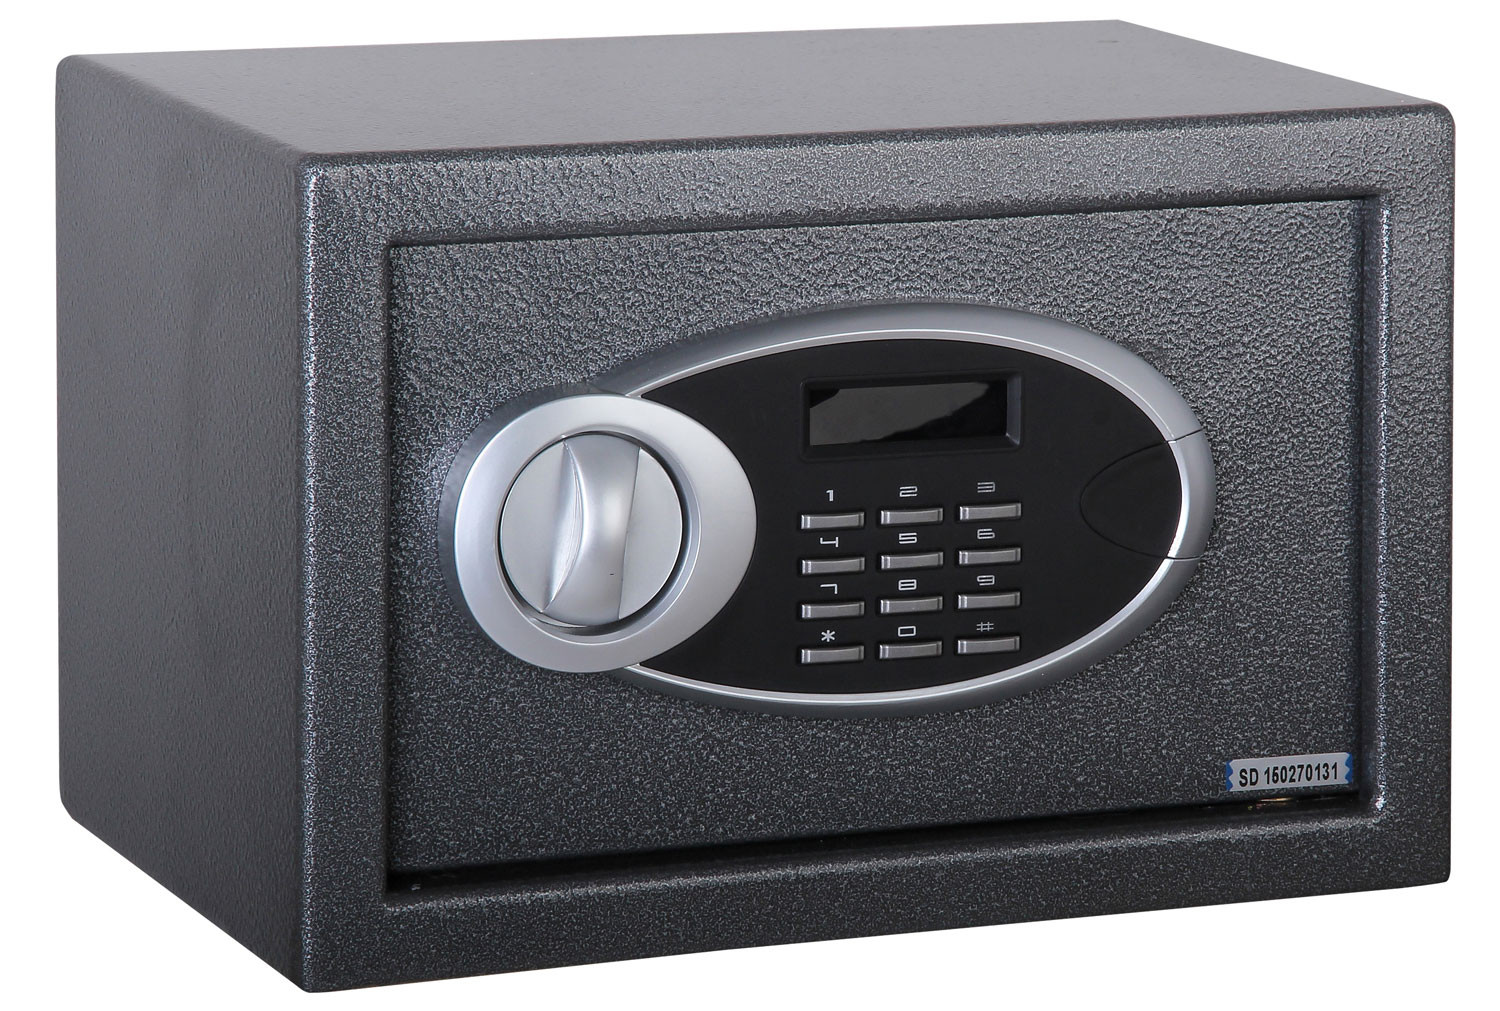 Phoenix Rhea SS0101E home office safe with electronic lock (10ltrs)